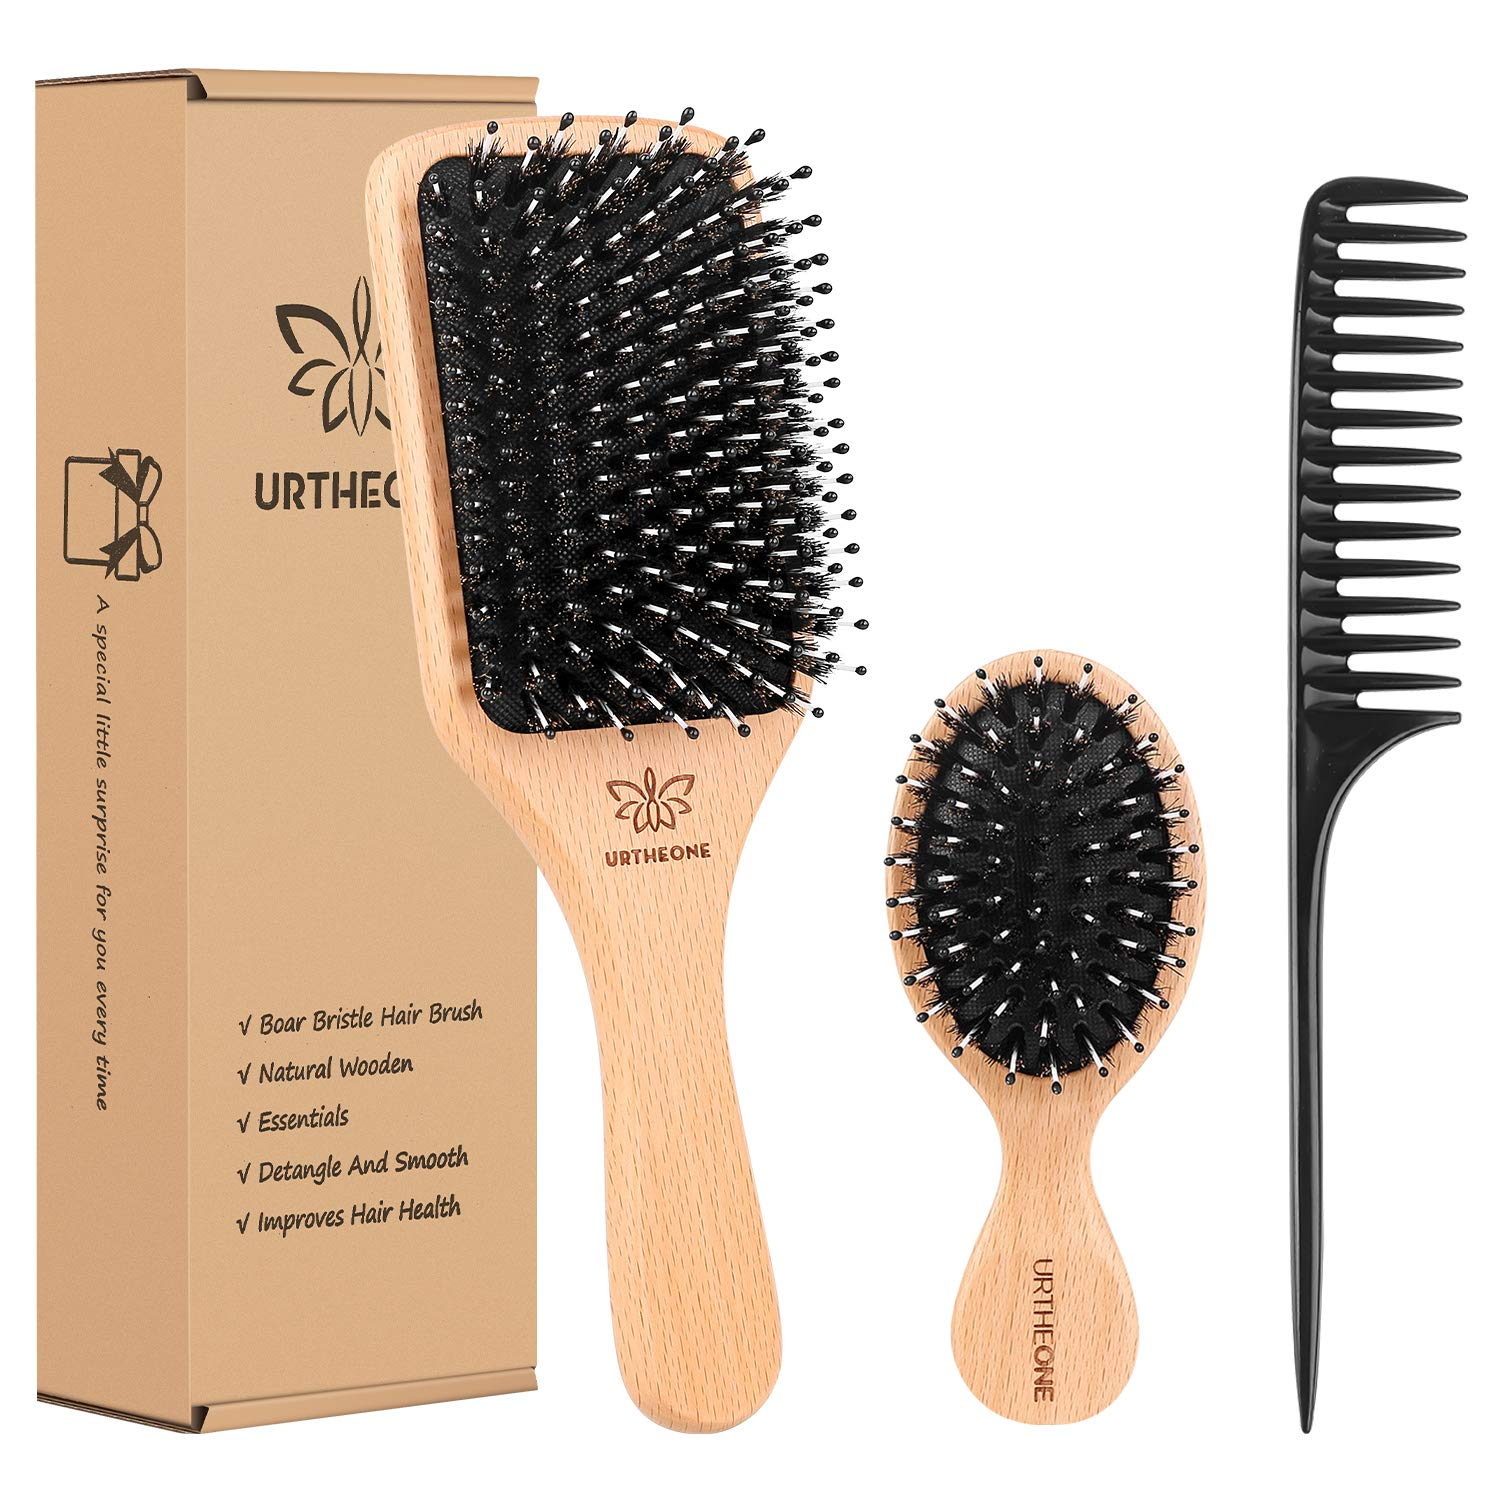 Boar Bristle Hair Brush and Comb Set for Women Men Kids, Best Natural Wooden Paddle Hairbrush and Small Travel Styling Brush for Wet or Dry Hair Detangling Smoothing Massaging